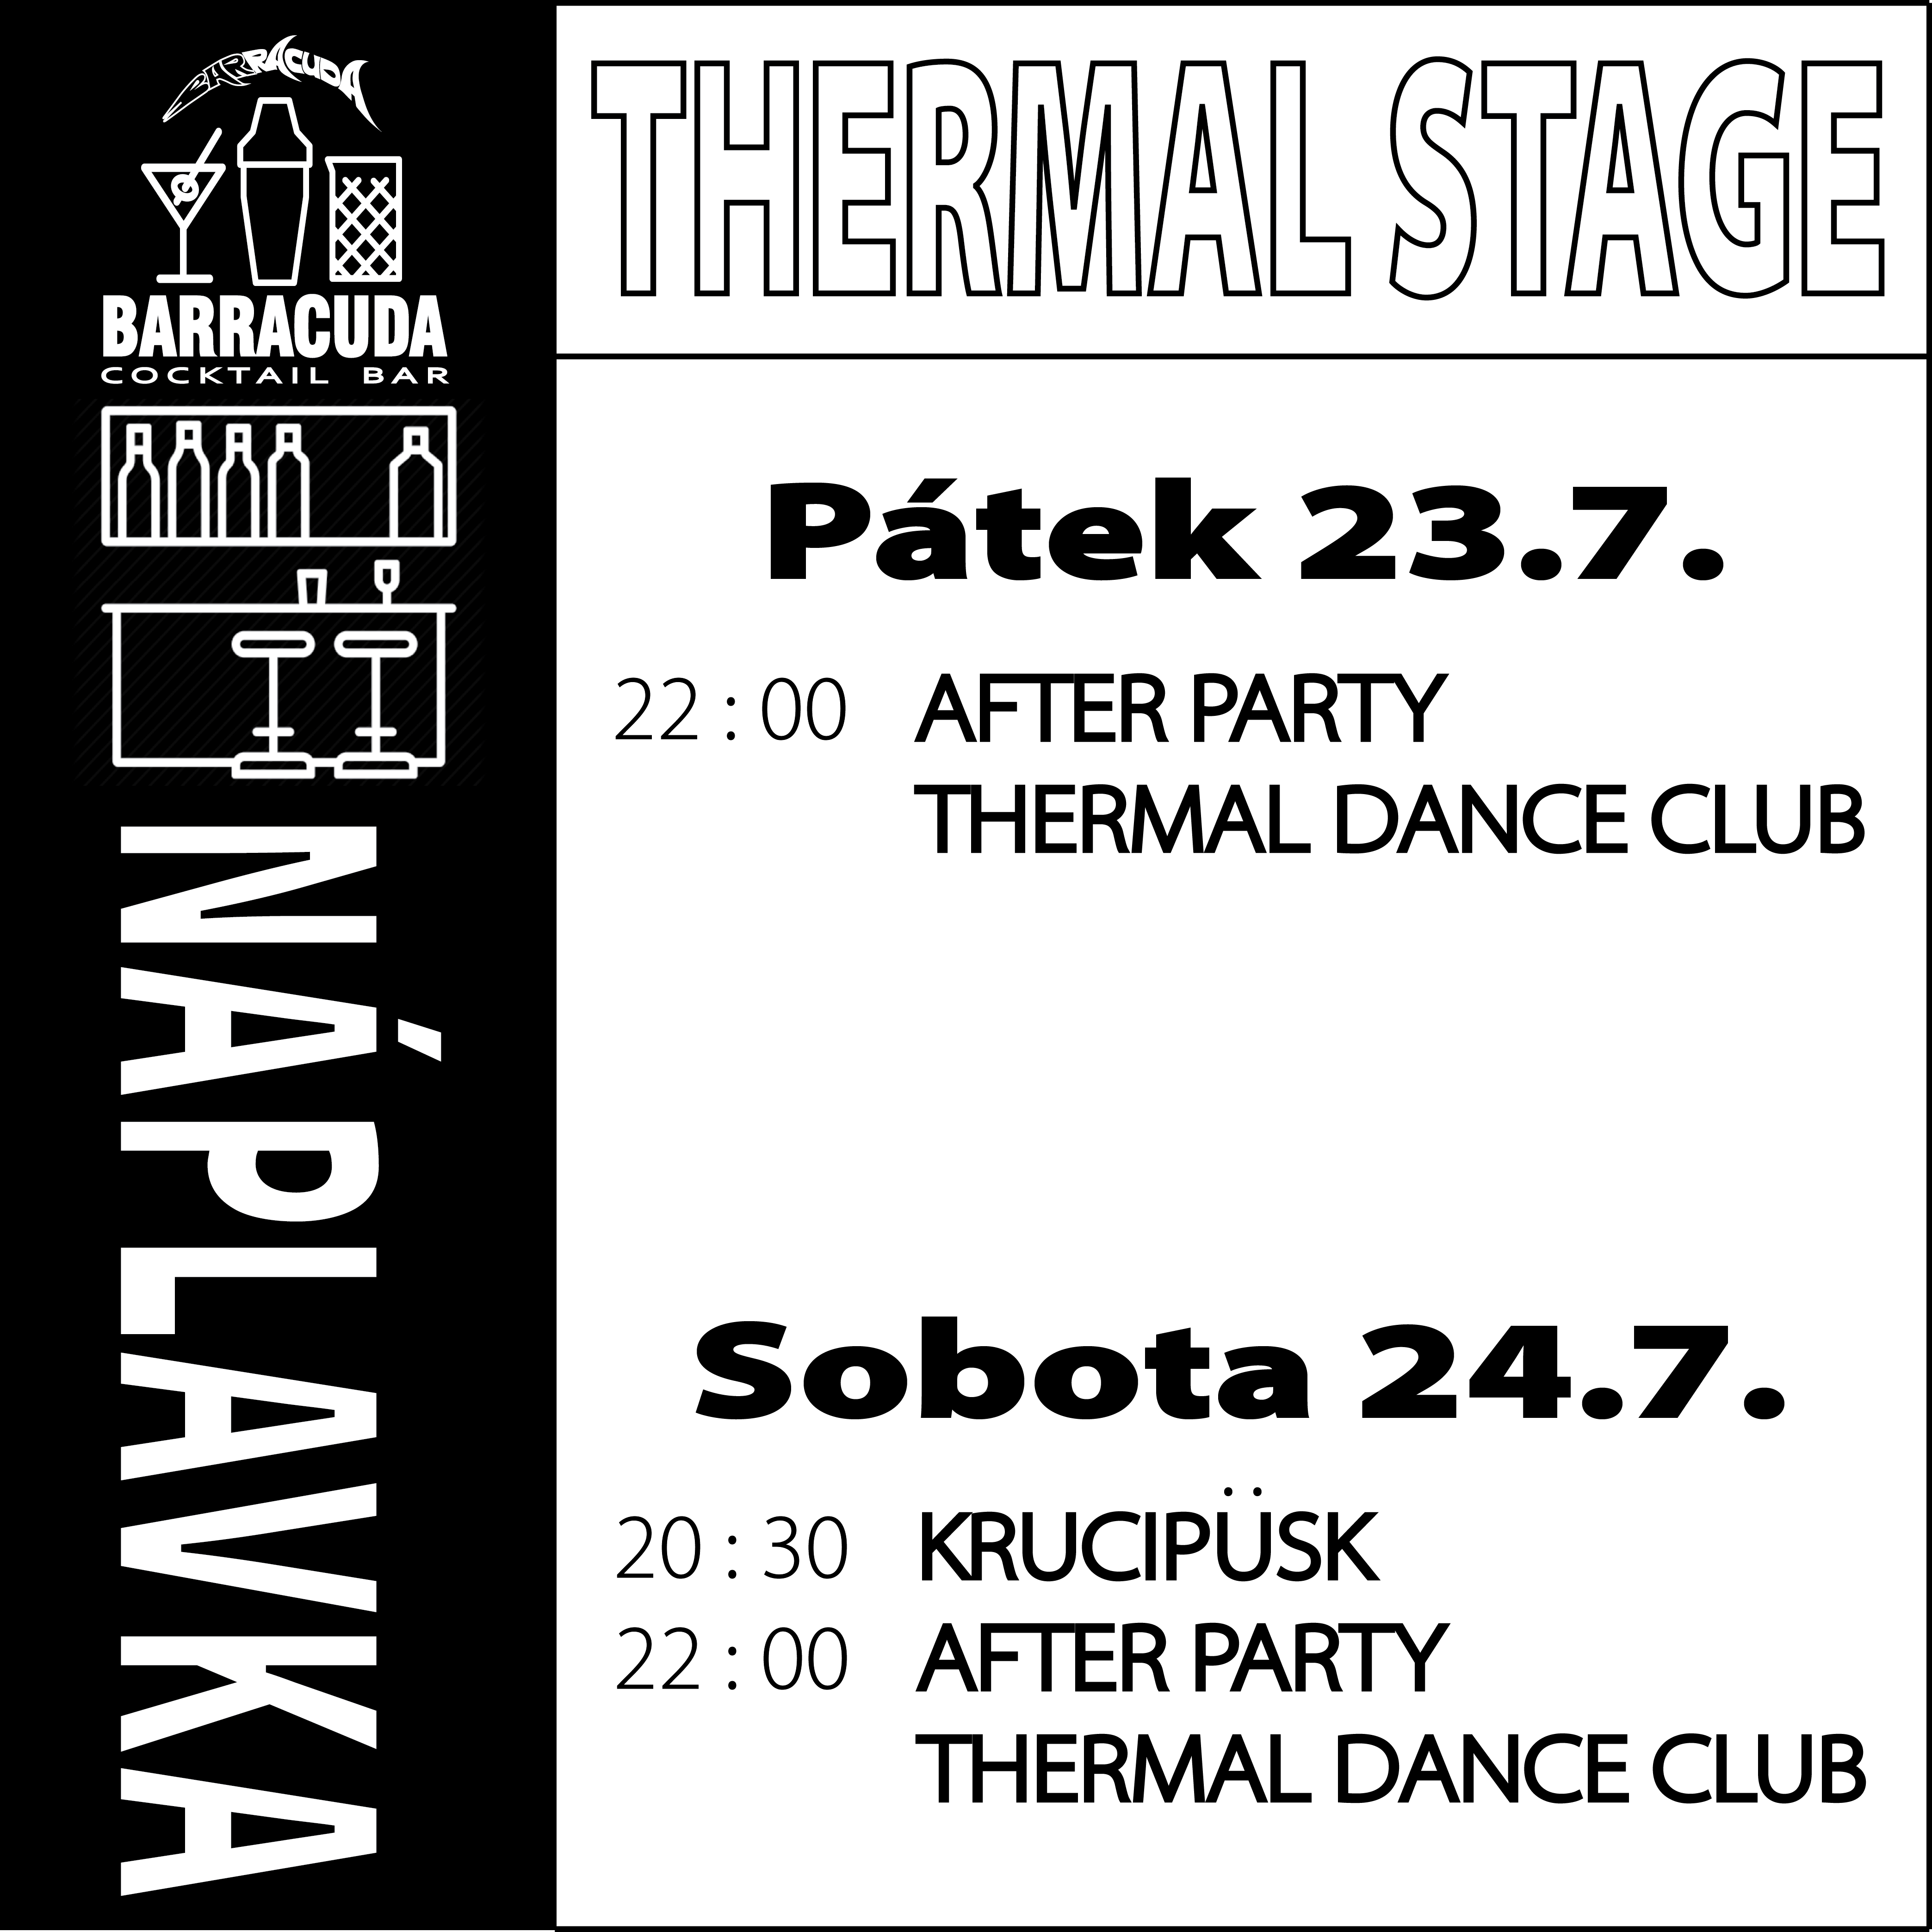 NÁPLAVKA THERMAL STAGE / AFTER PARTY THERMAL DANCE CLUB